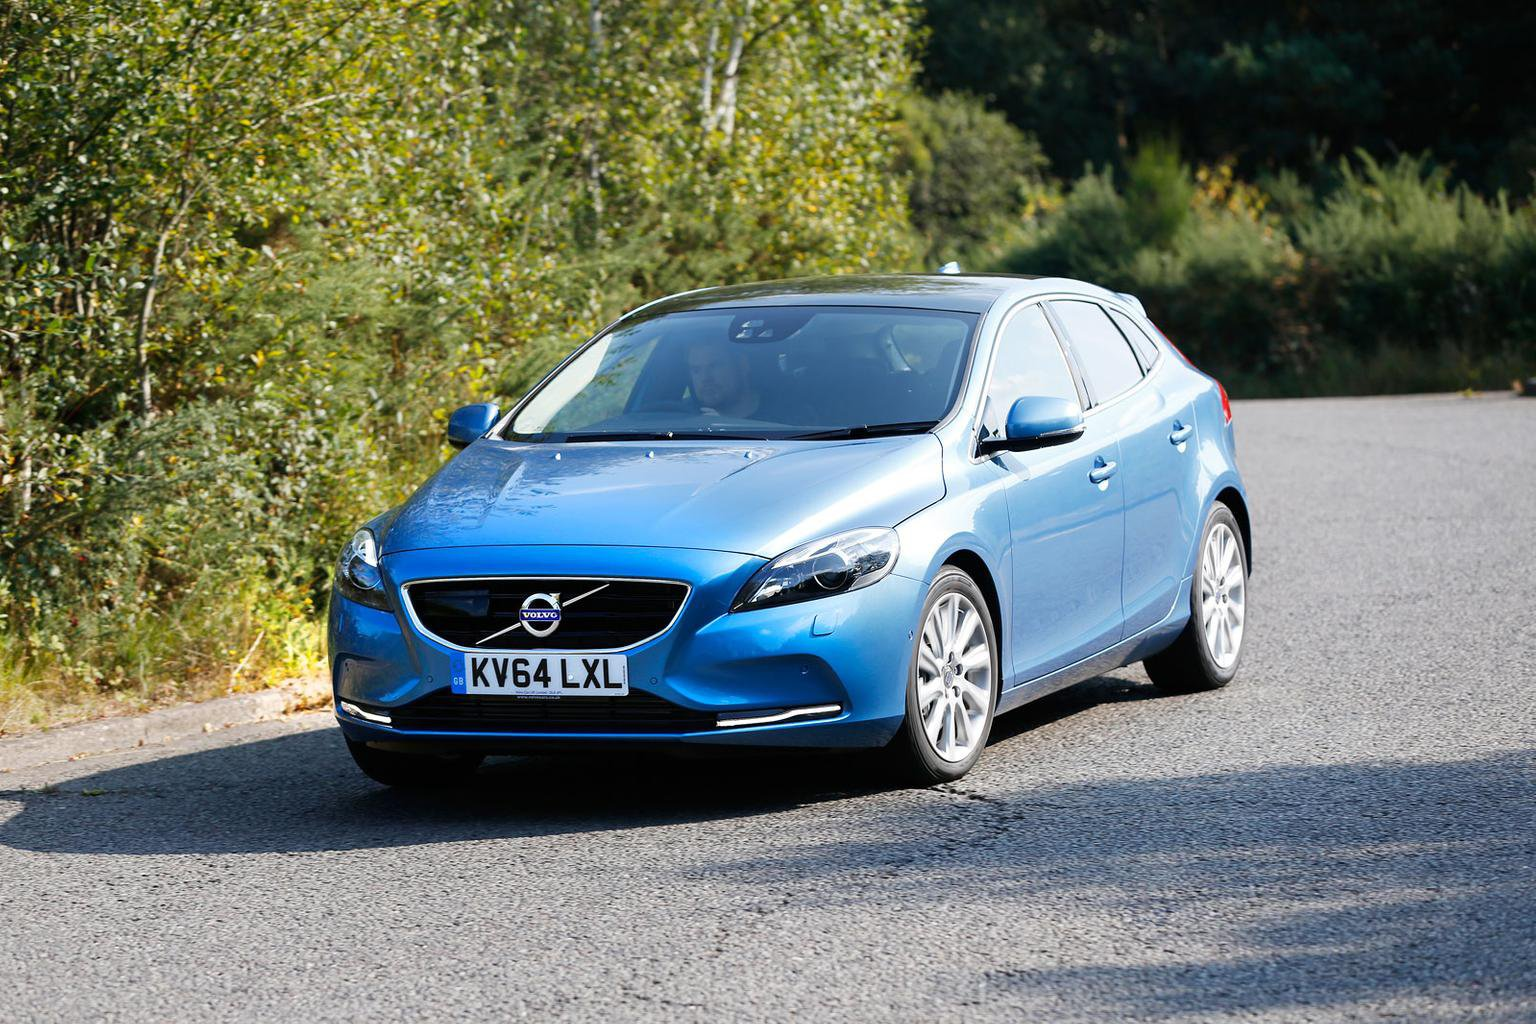 2014 Volvo V40 D4 review